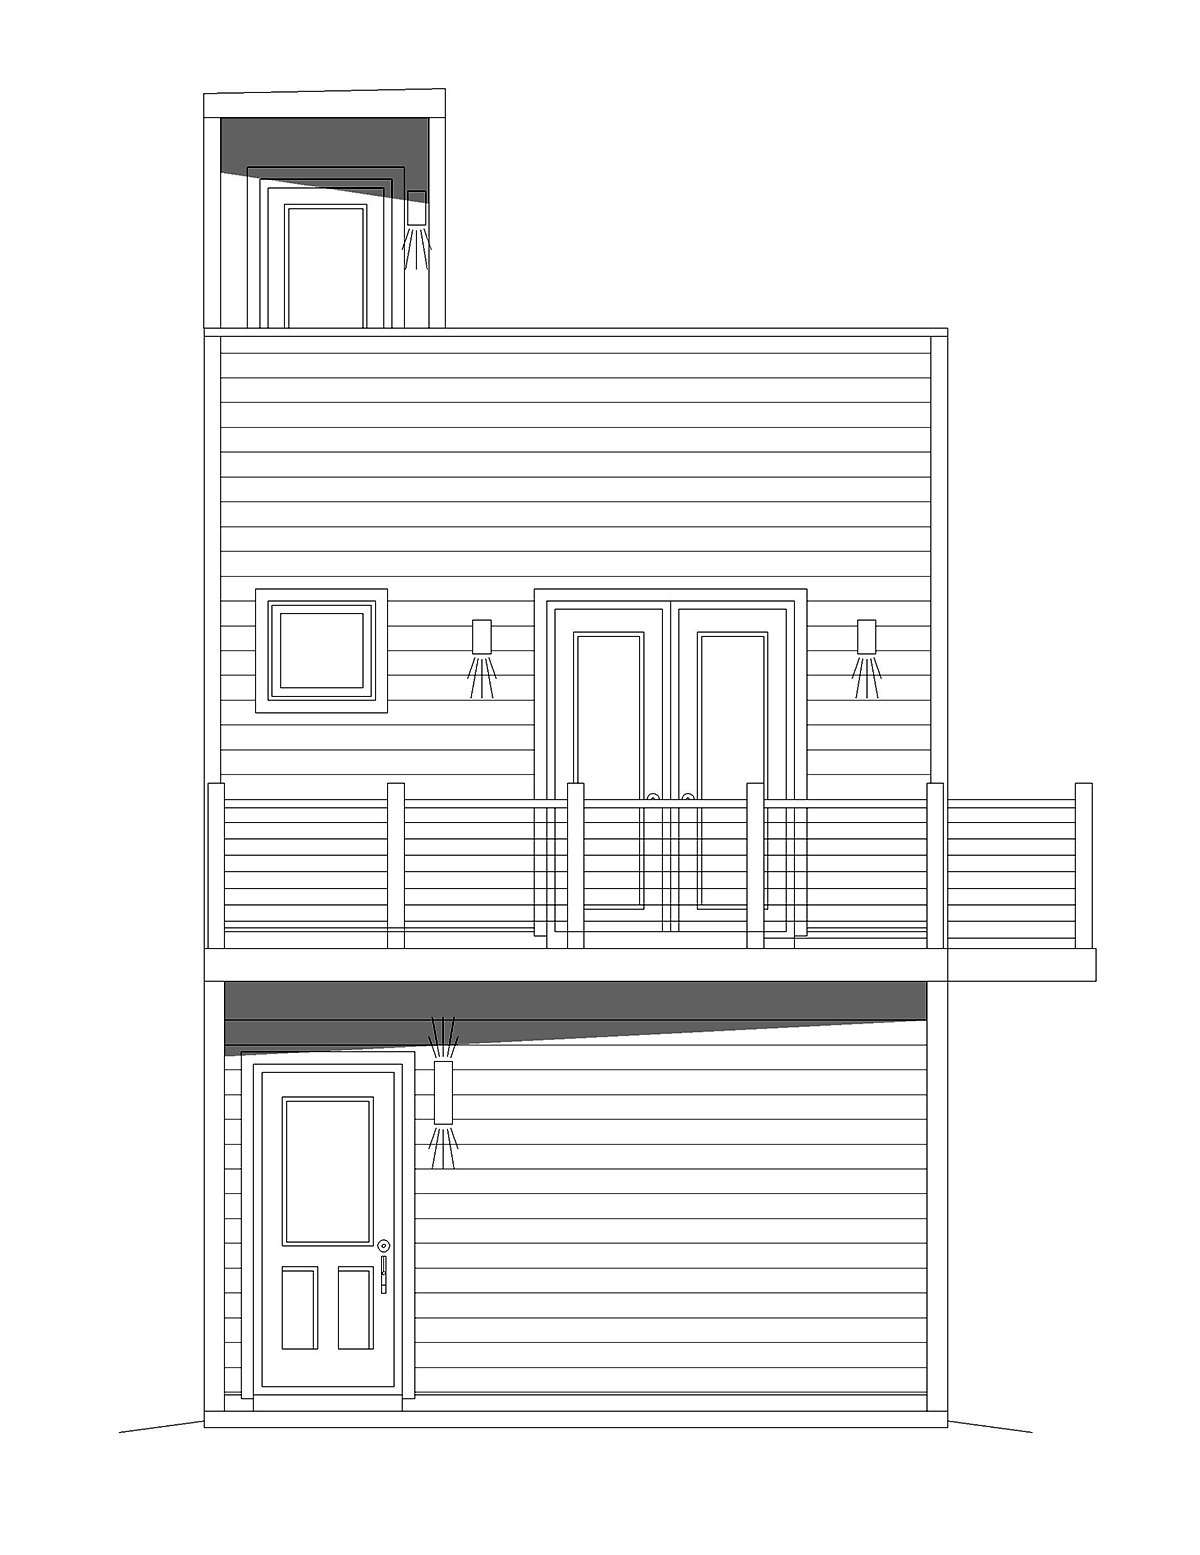 Contemporary, Modern, Narrow Lot House Plan 40839 with 2 Beds, 1 Baths, 2 Car Garage Rear Elevation